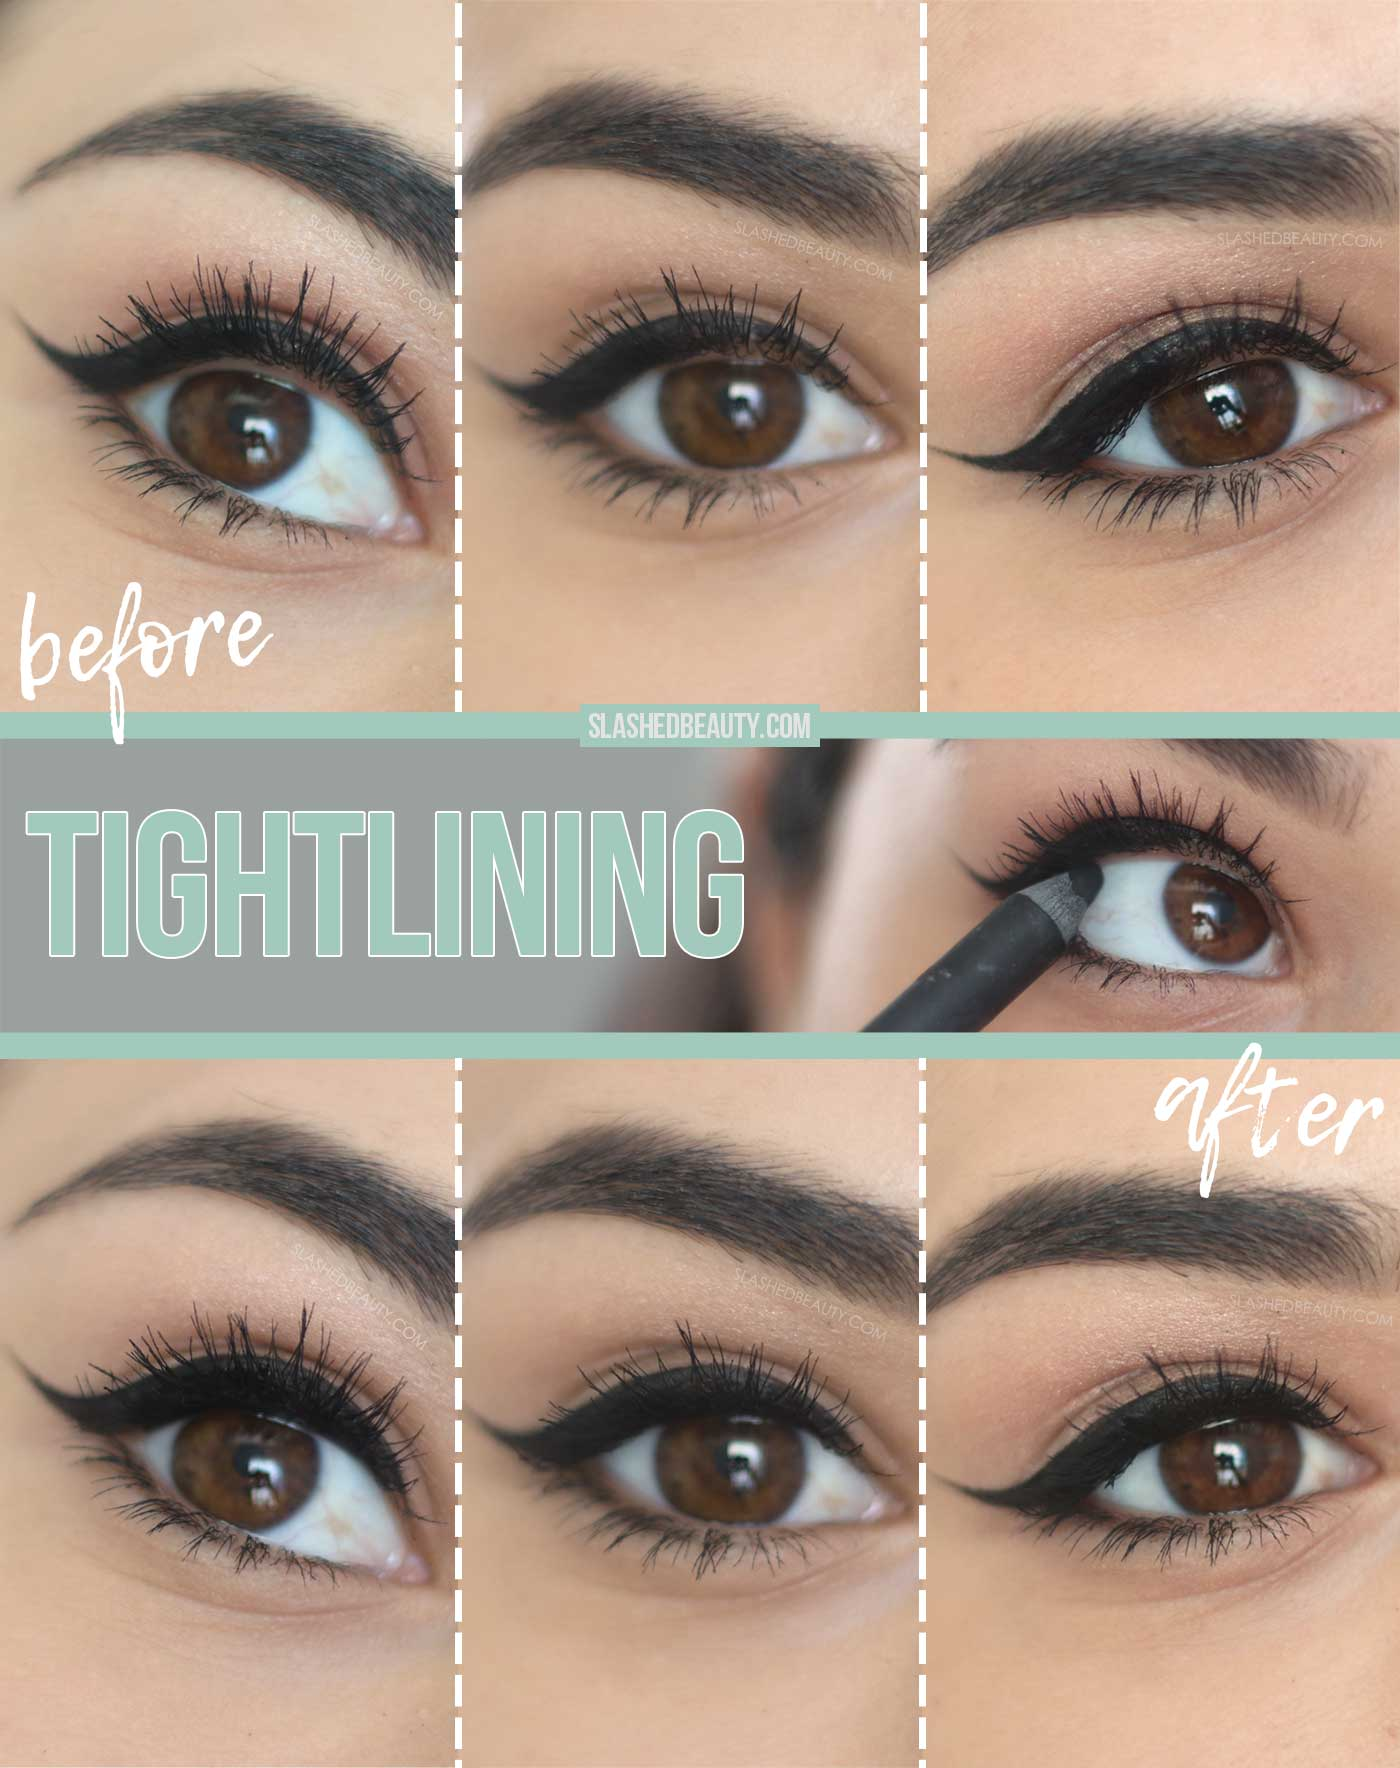 5 Best Drugstore Eyeliners for Tightlining | What is tightlining eyeliner? | How to tightline eyes | Slashed Beauty